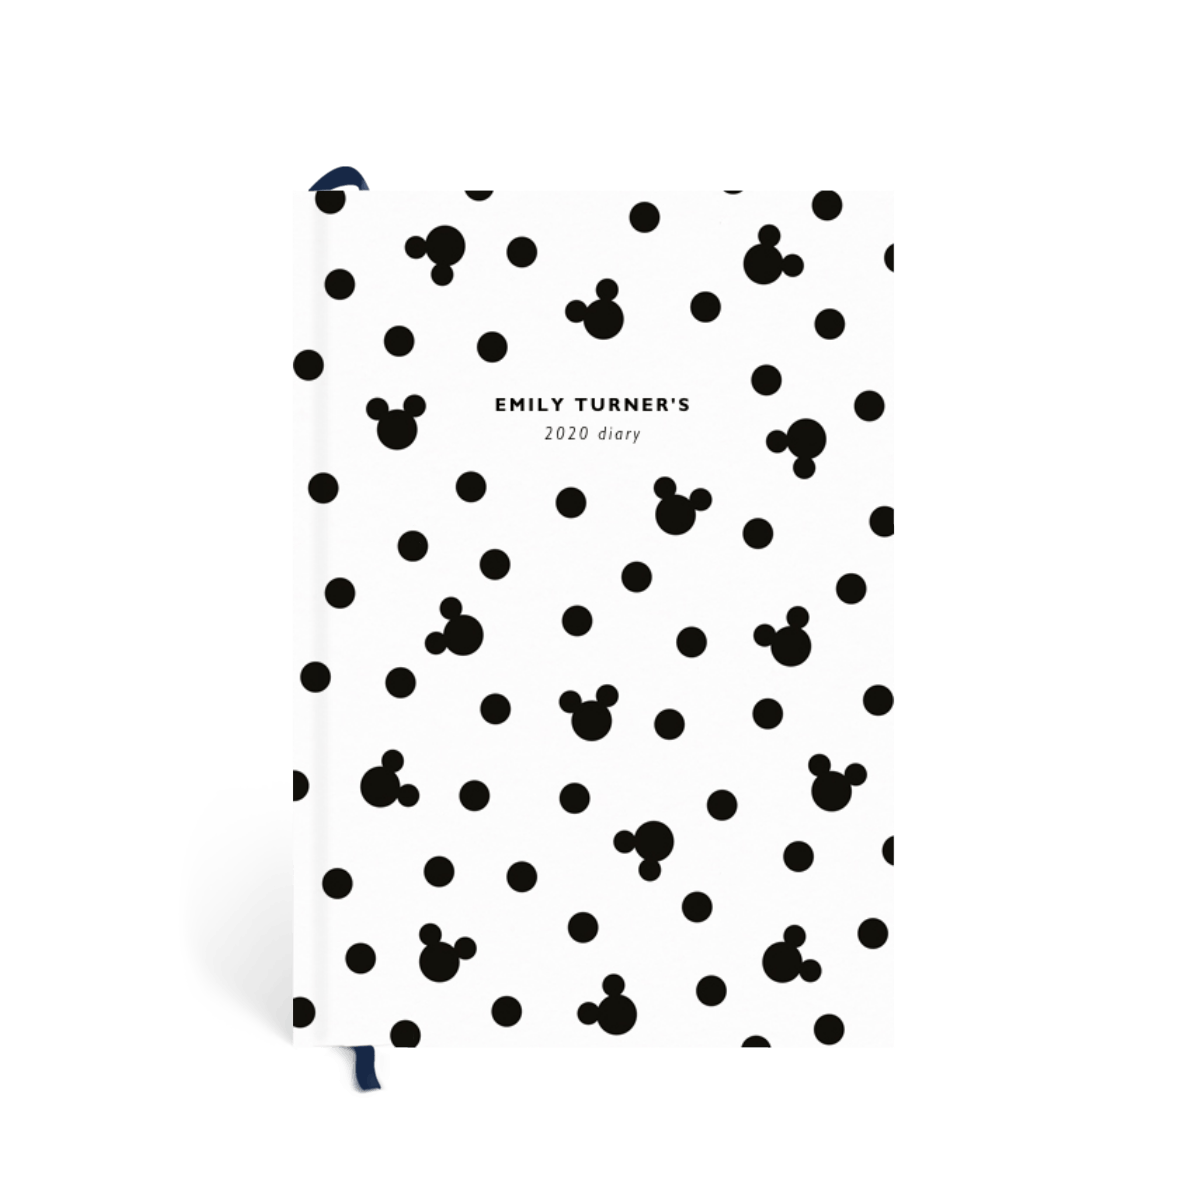 Https%3a%2f%2fwww.papier.com%2fproduct image%2f58889%2f36%2fpolka dot mickey mouse 14057 front 1542882564.png?ixlib=rb 1.1